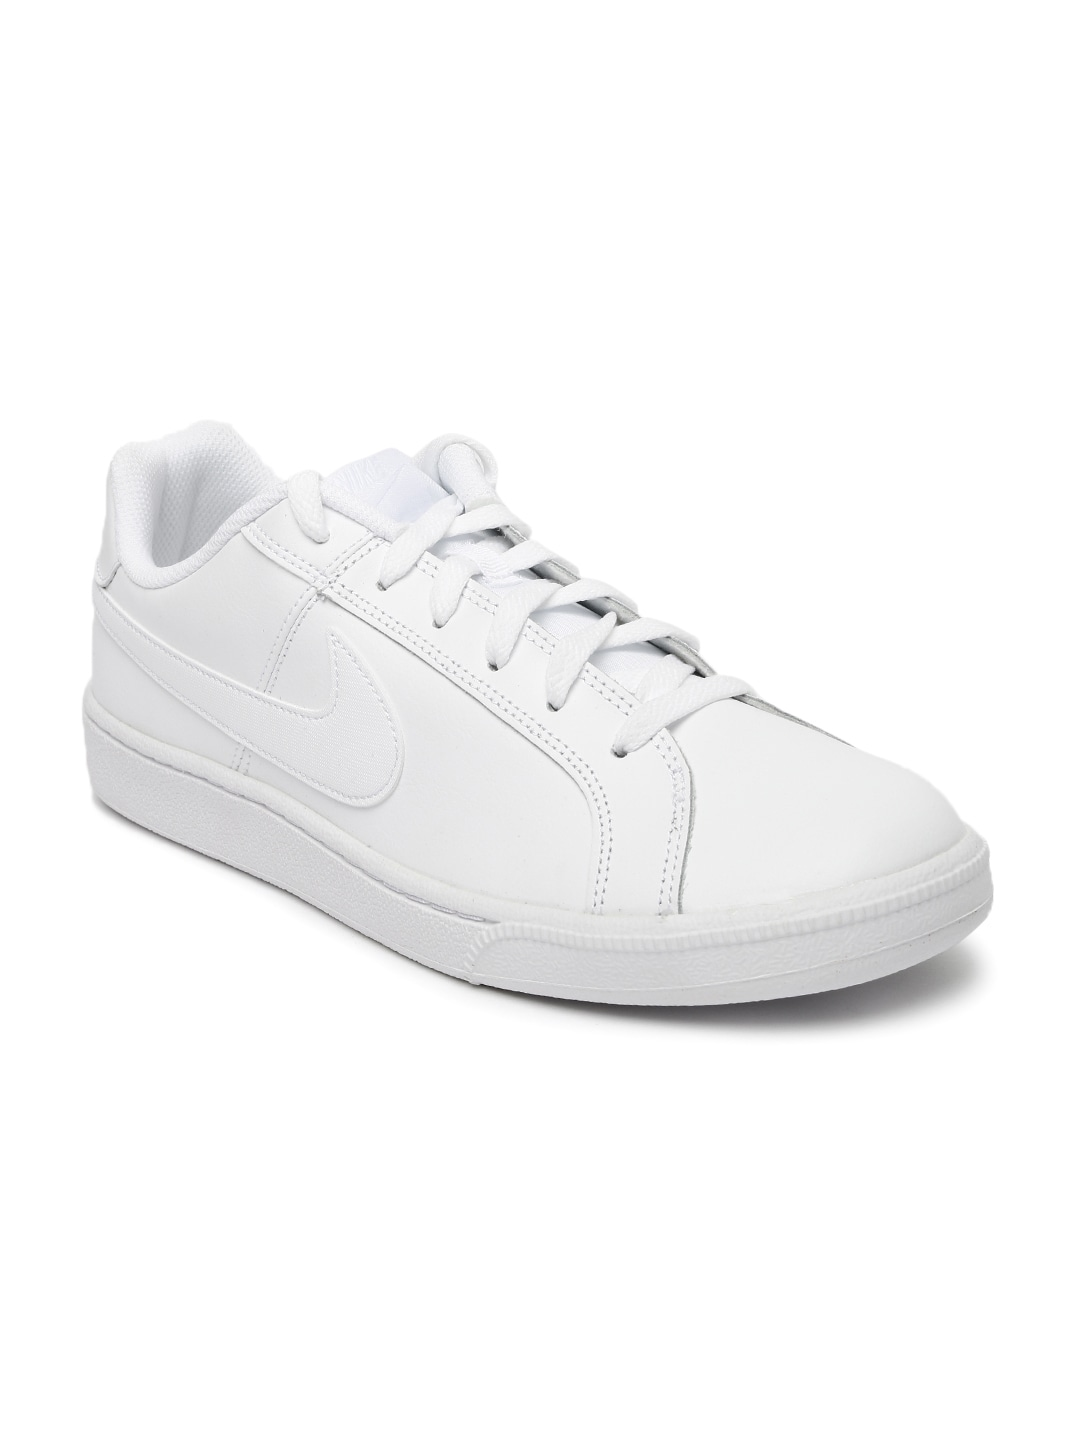 timeless design 2e7d3 fa327 Nike Shoes - Buy Nike Shoes for Men, Women   Kids Online   Myntra